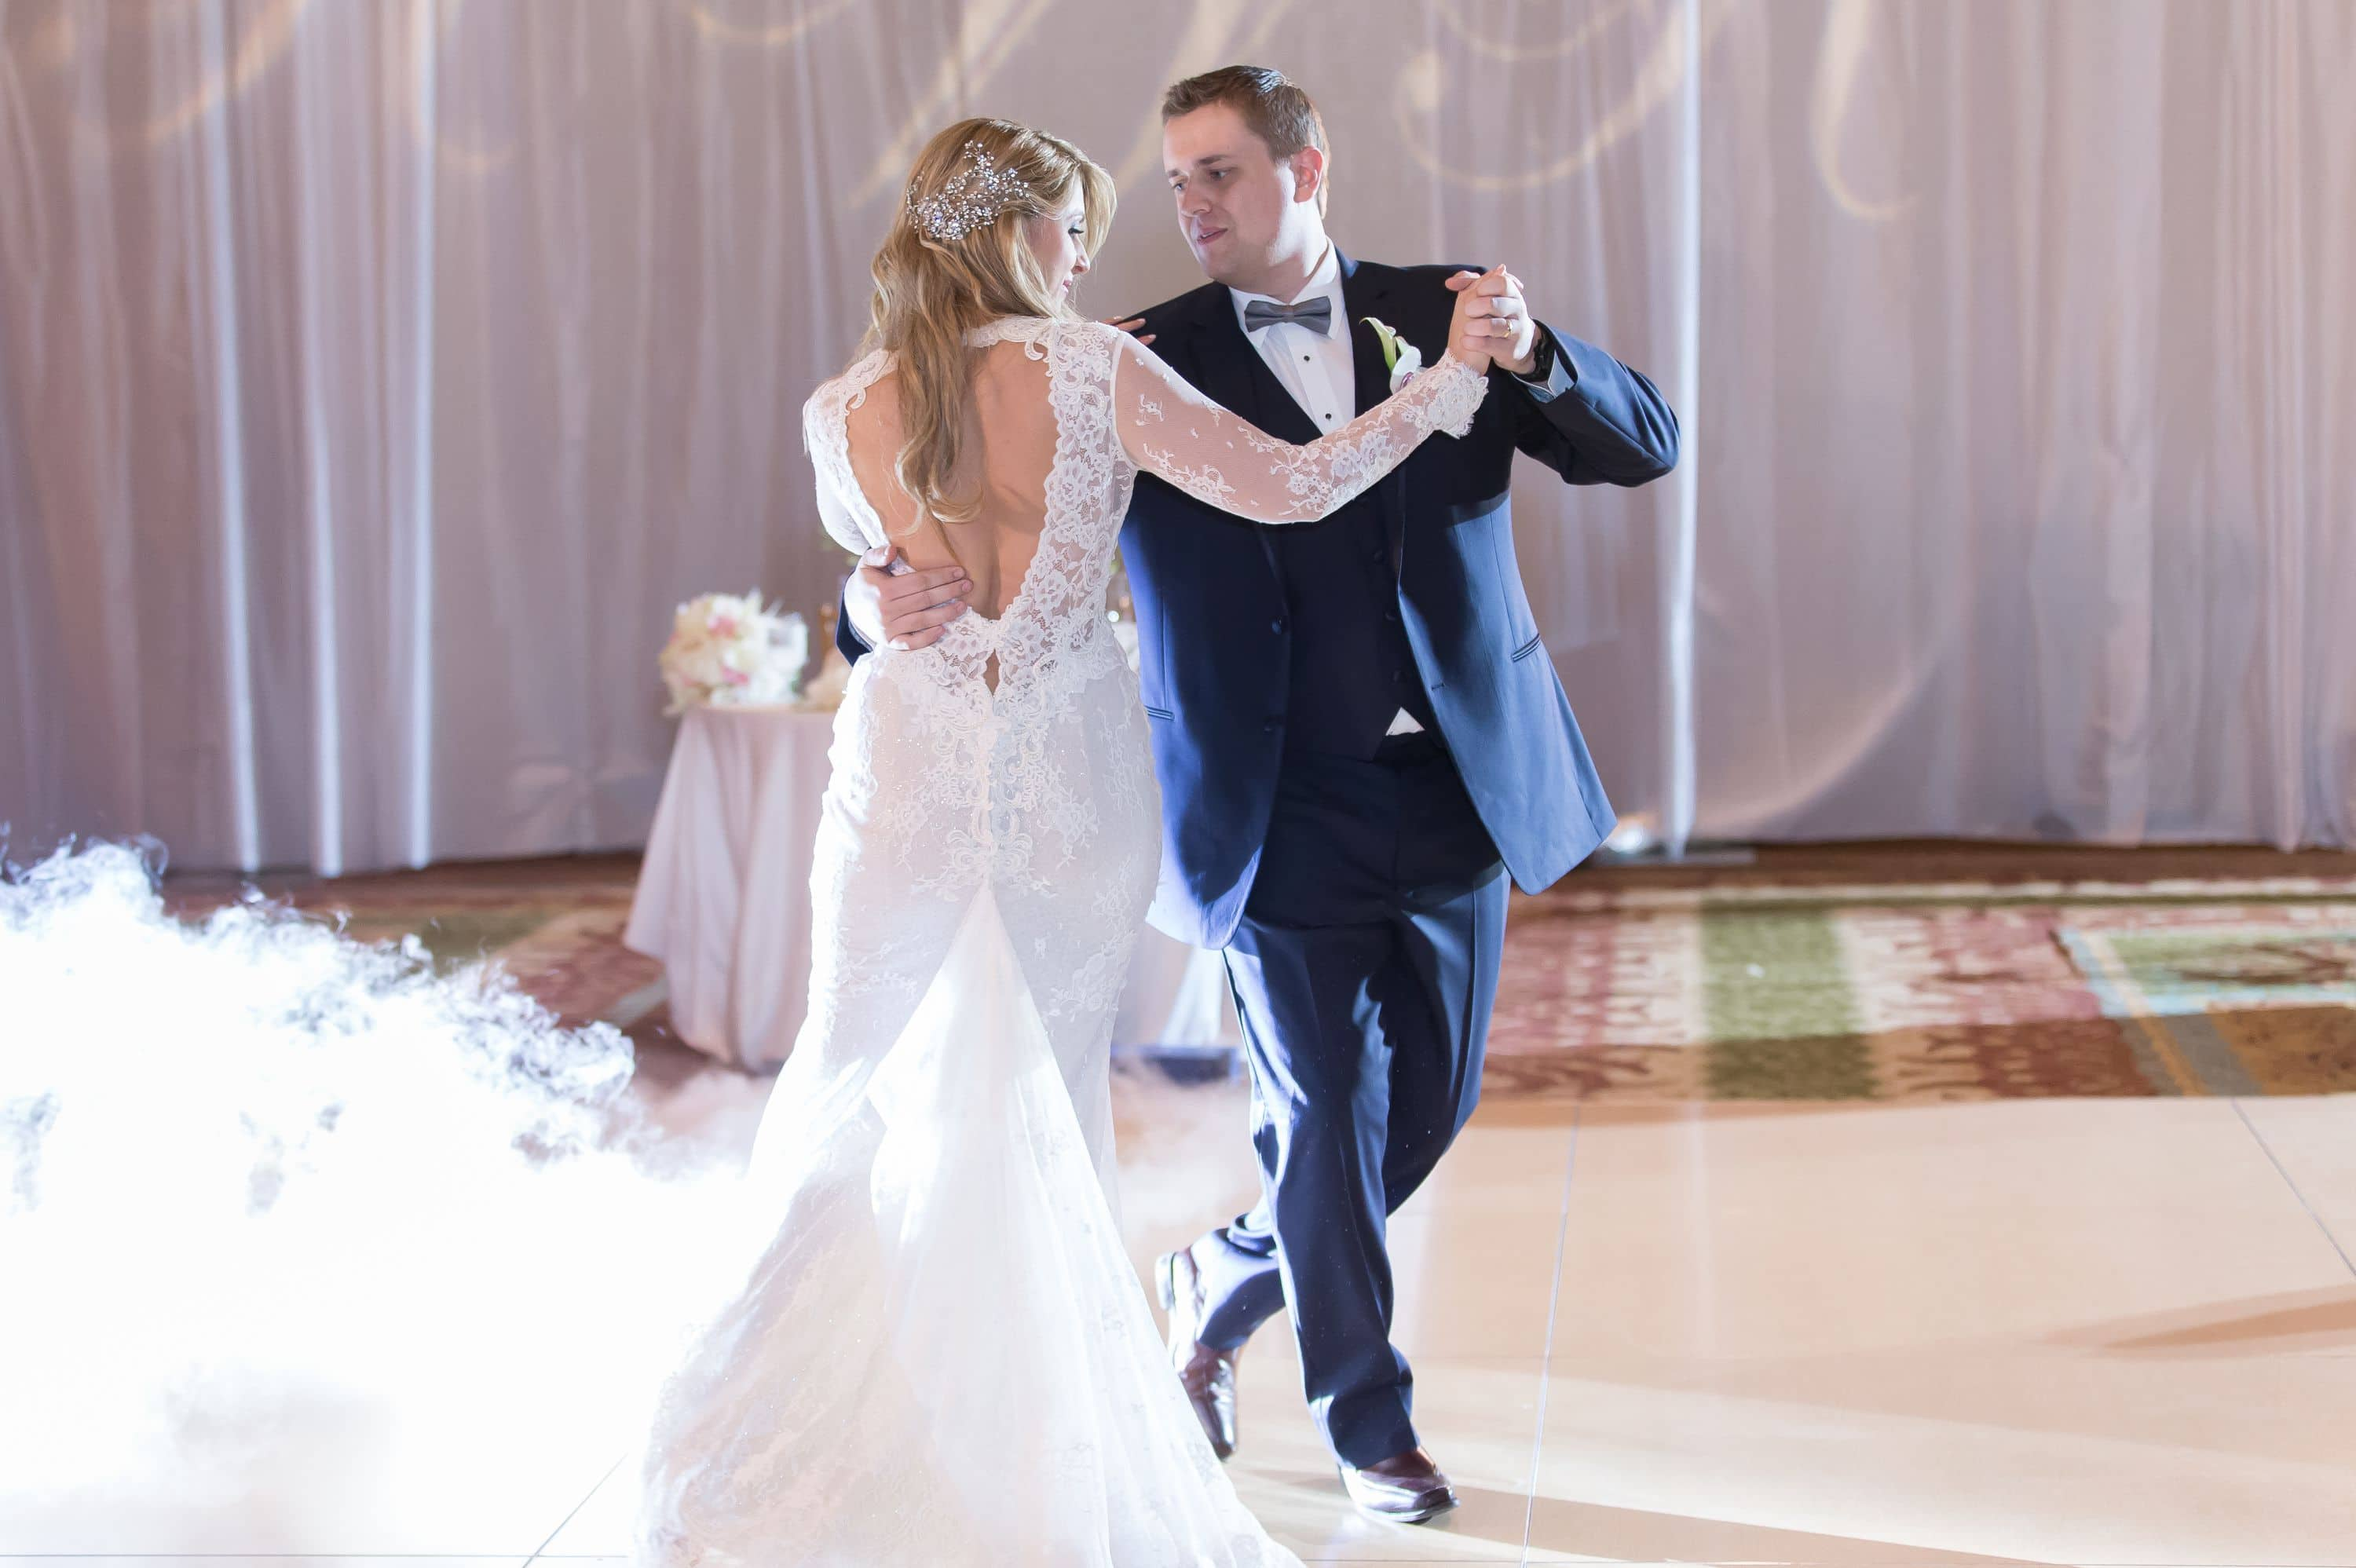 First dance with bride and groom at this amazing Diplomat Beach Resort Wedding